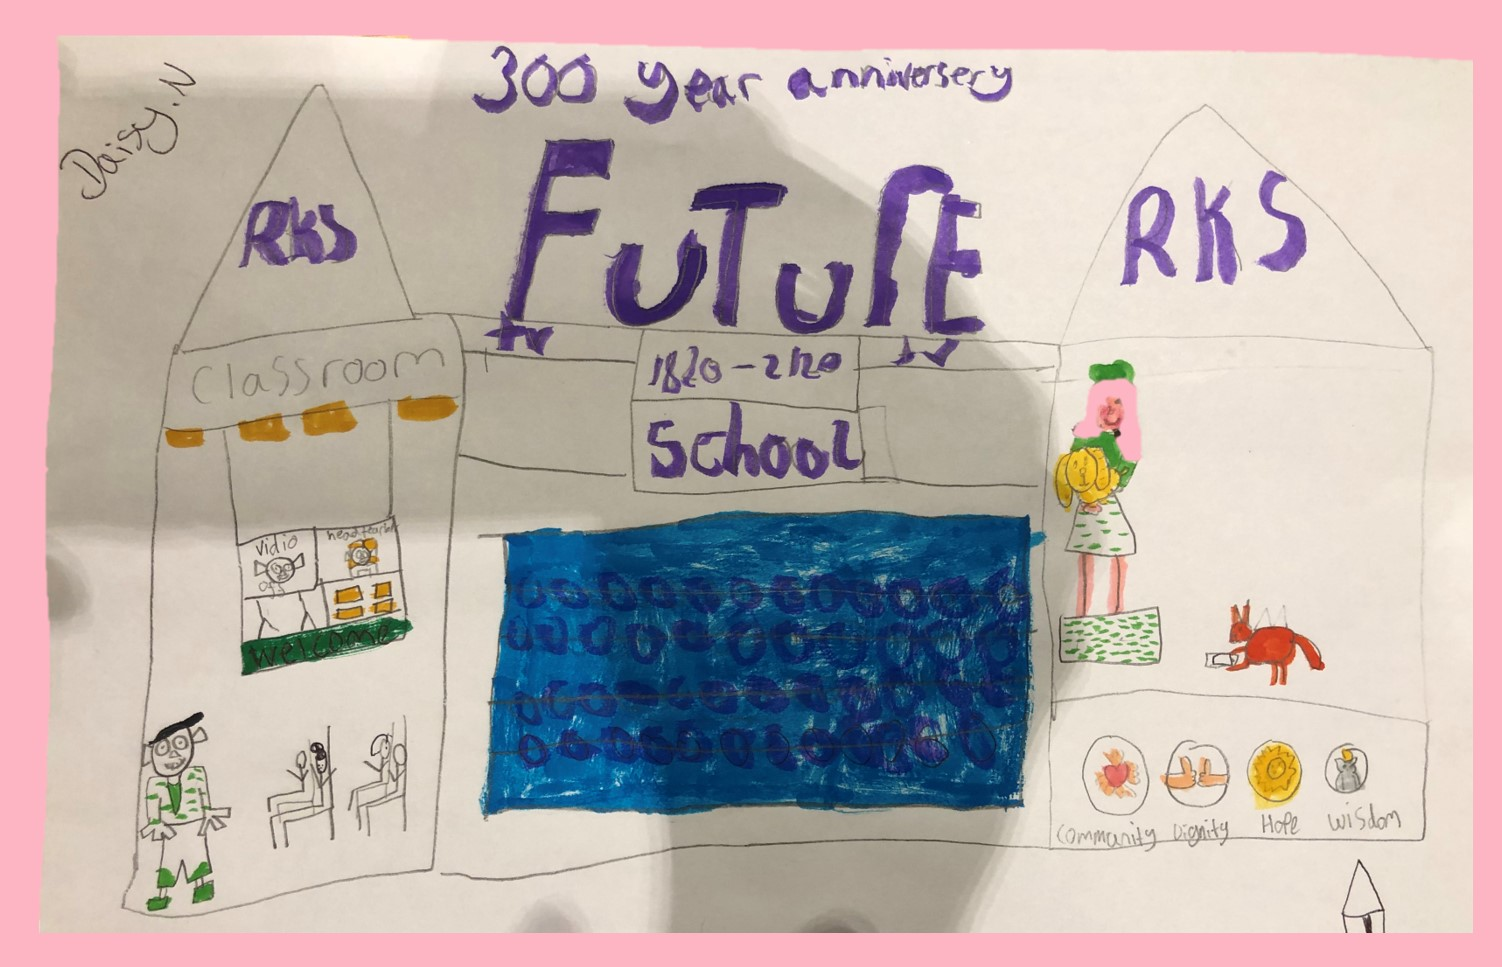 Daisy has drawn a picture of what her school will be like in 100 years time using pencil and felt tip pens. Her picture includes pets, a swimming pool and a futuristic classroom!